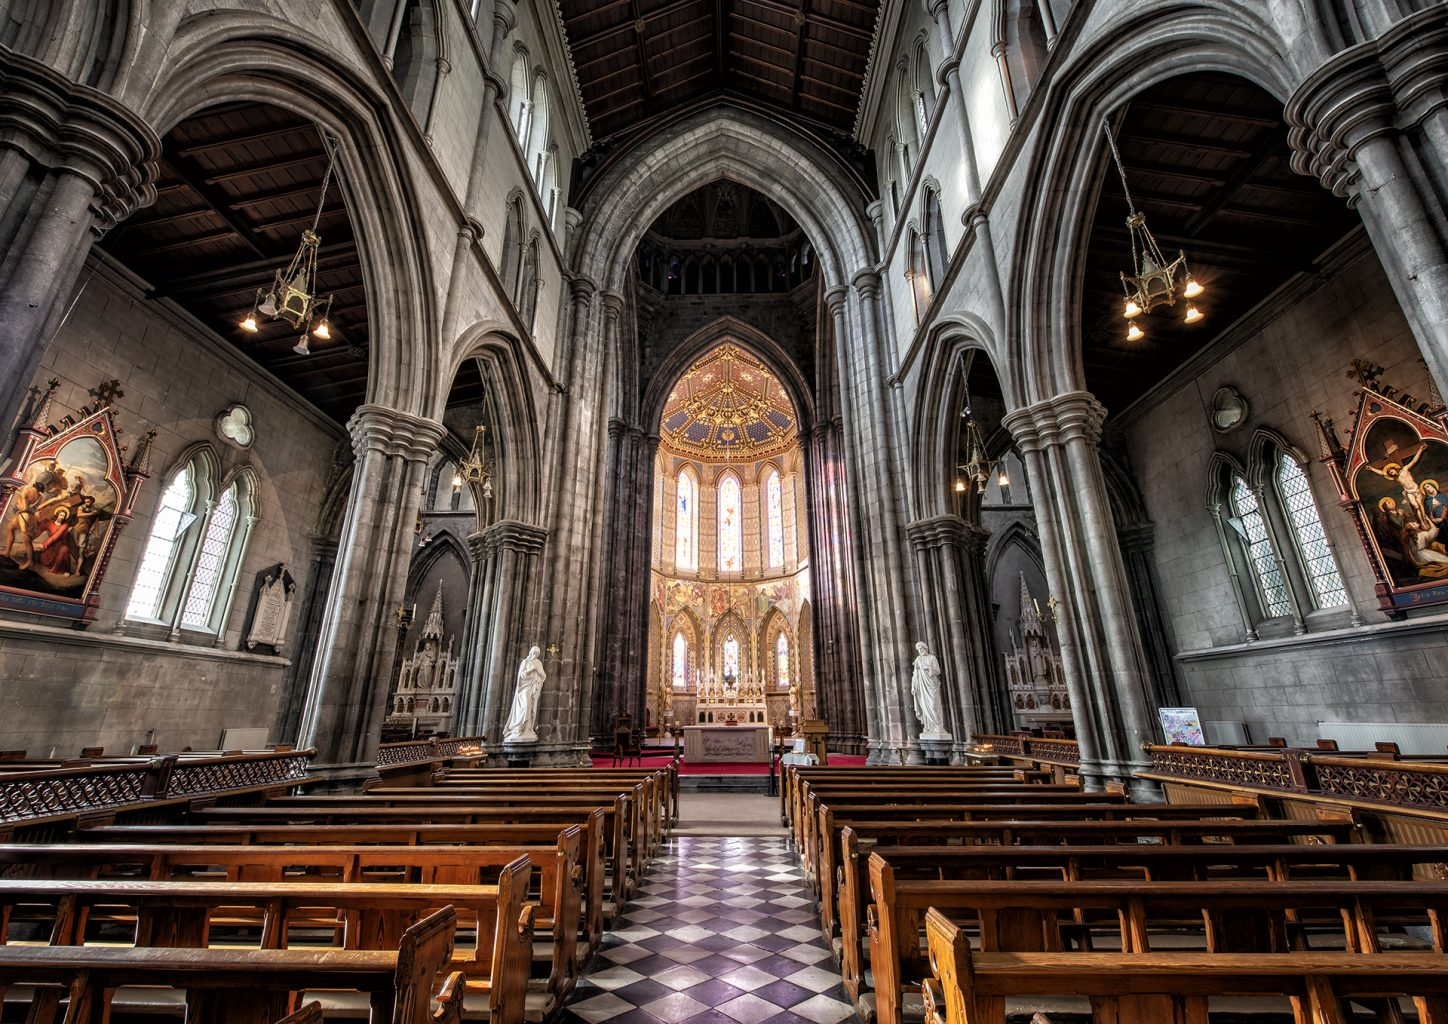 St. Mary's Cathedral Kilkenny